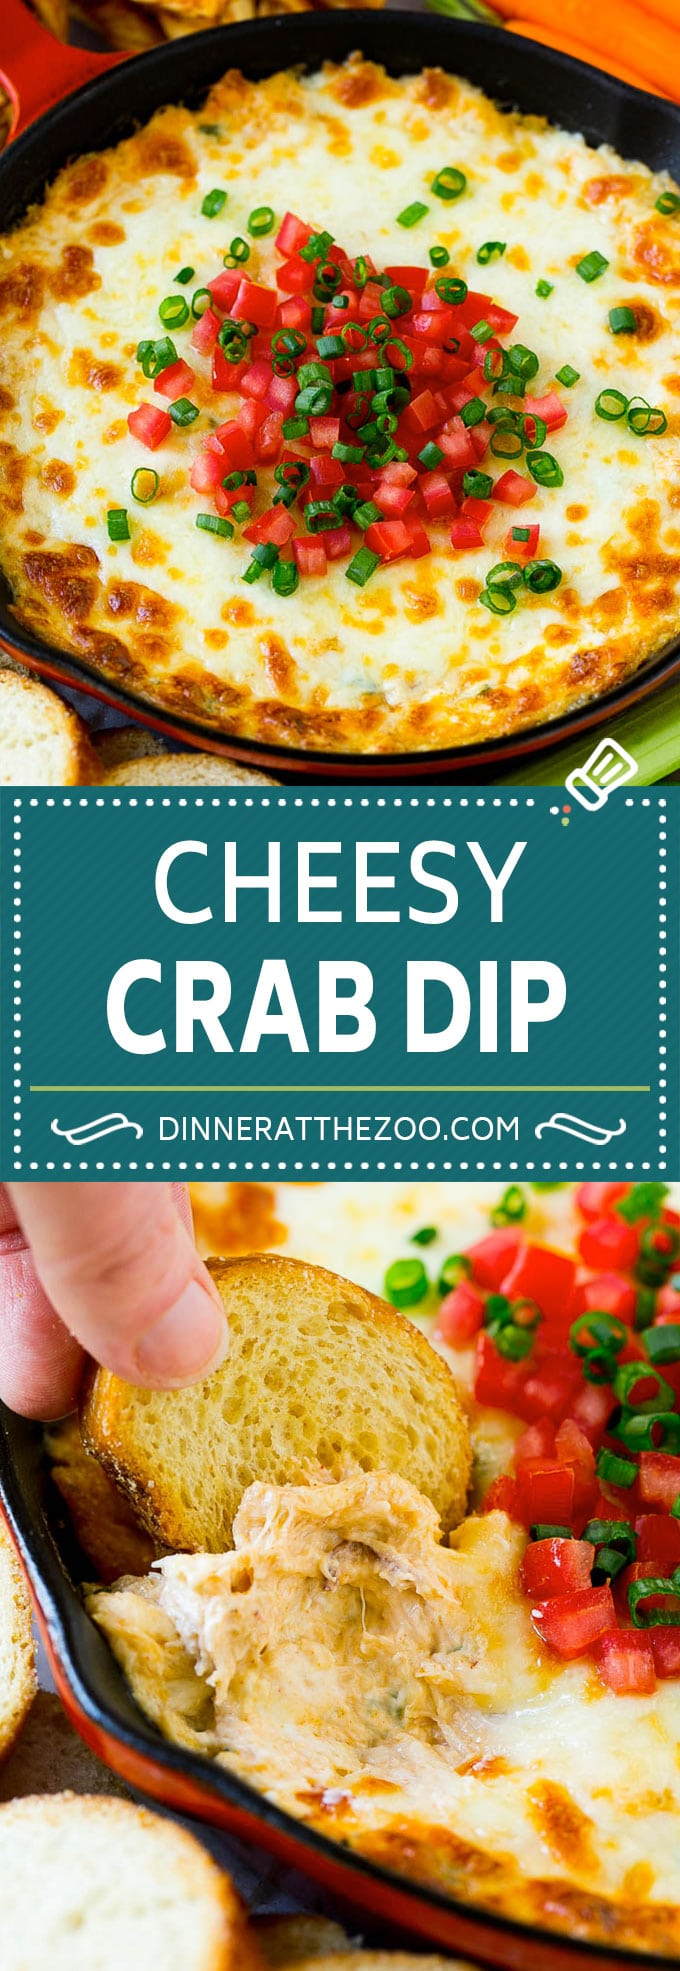 Crab Dip Recipe | Hot Crab Dip | Seafood Dip #dip #crab #seafood #appetizer #dinneratthezoo #cheese